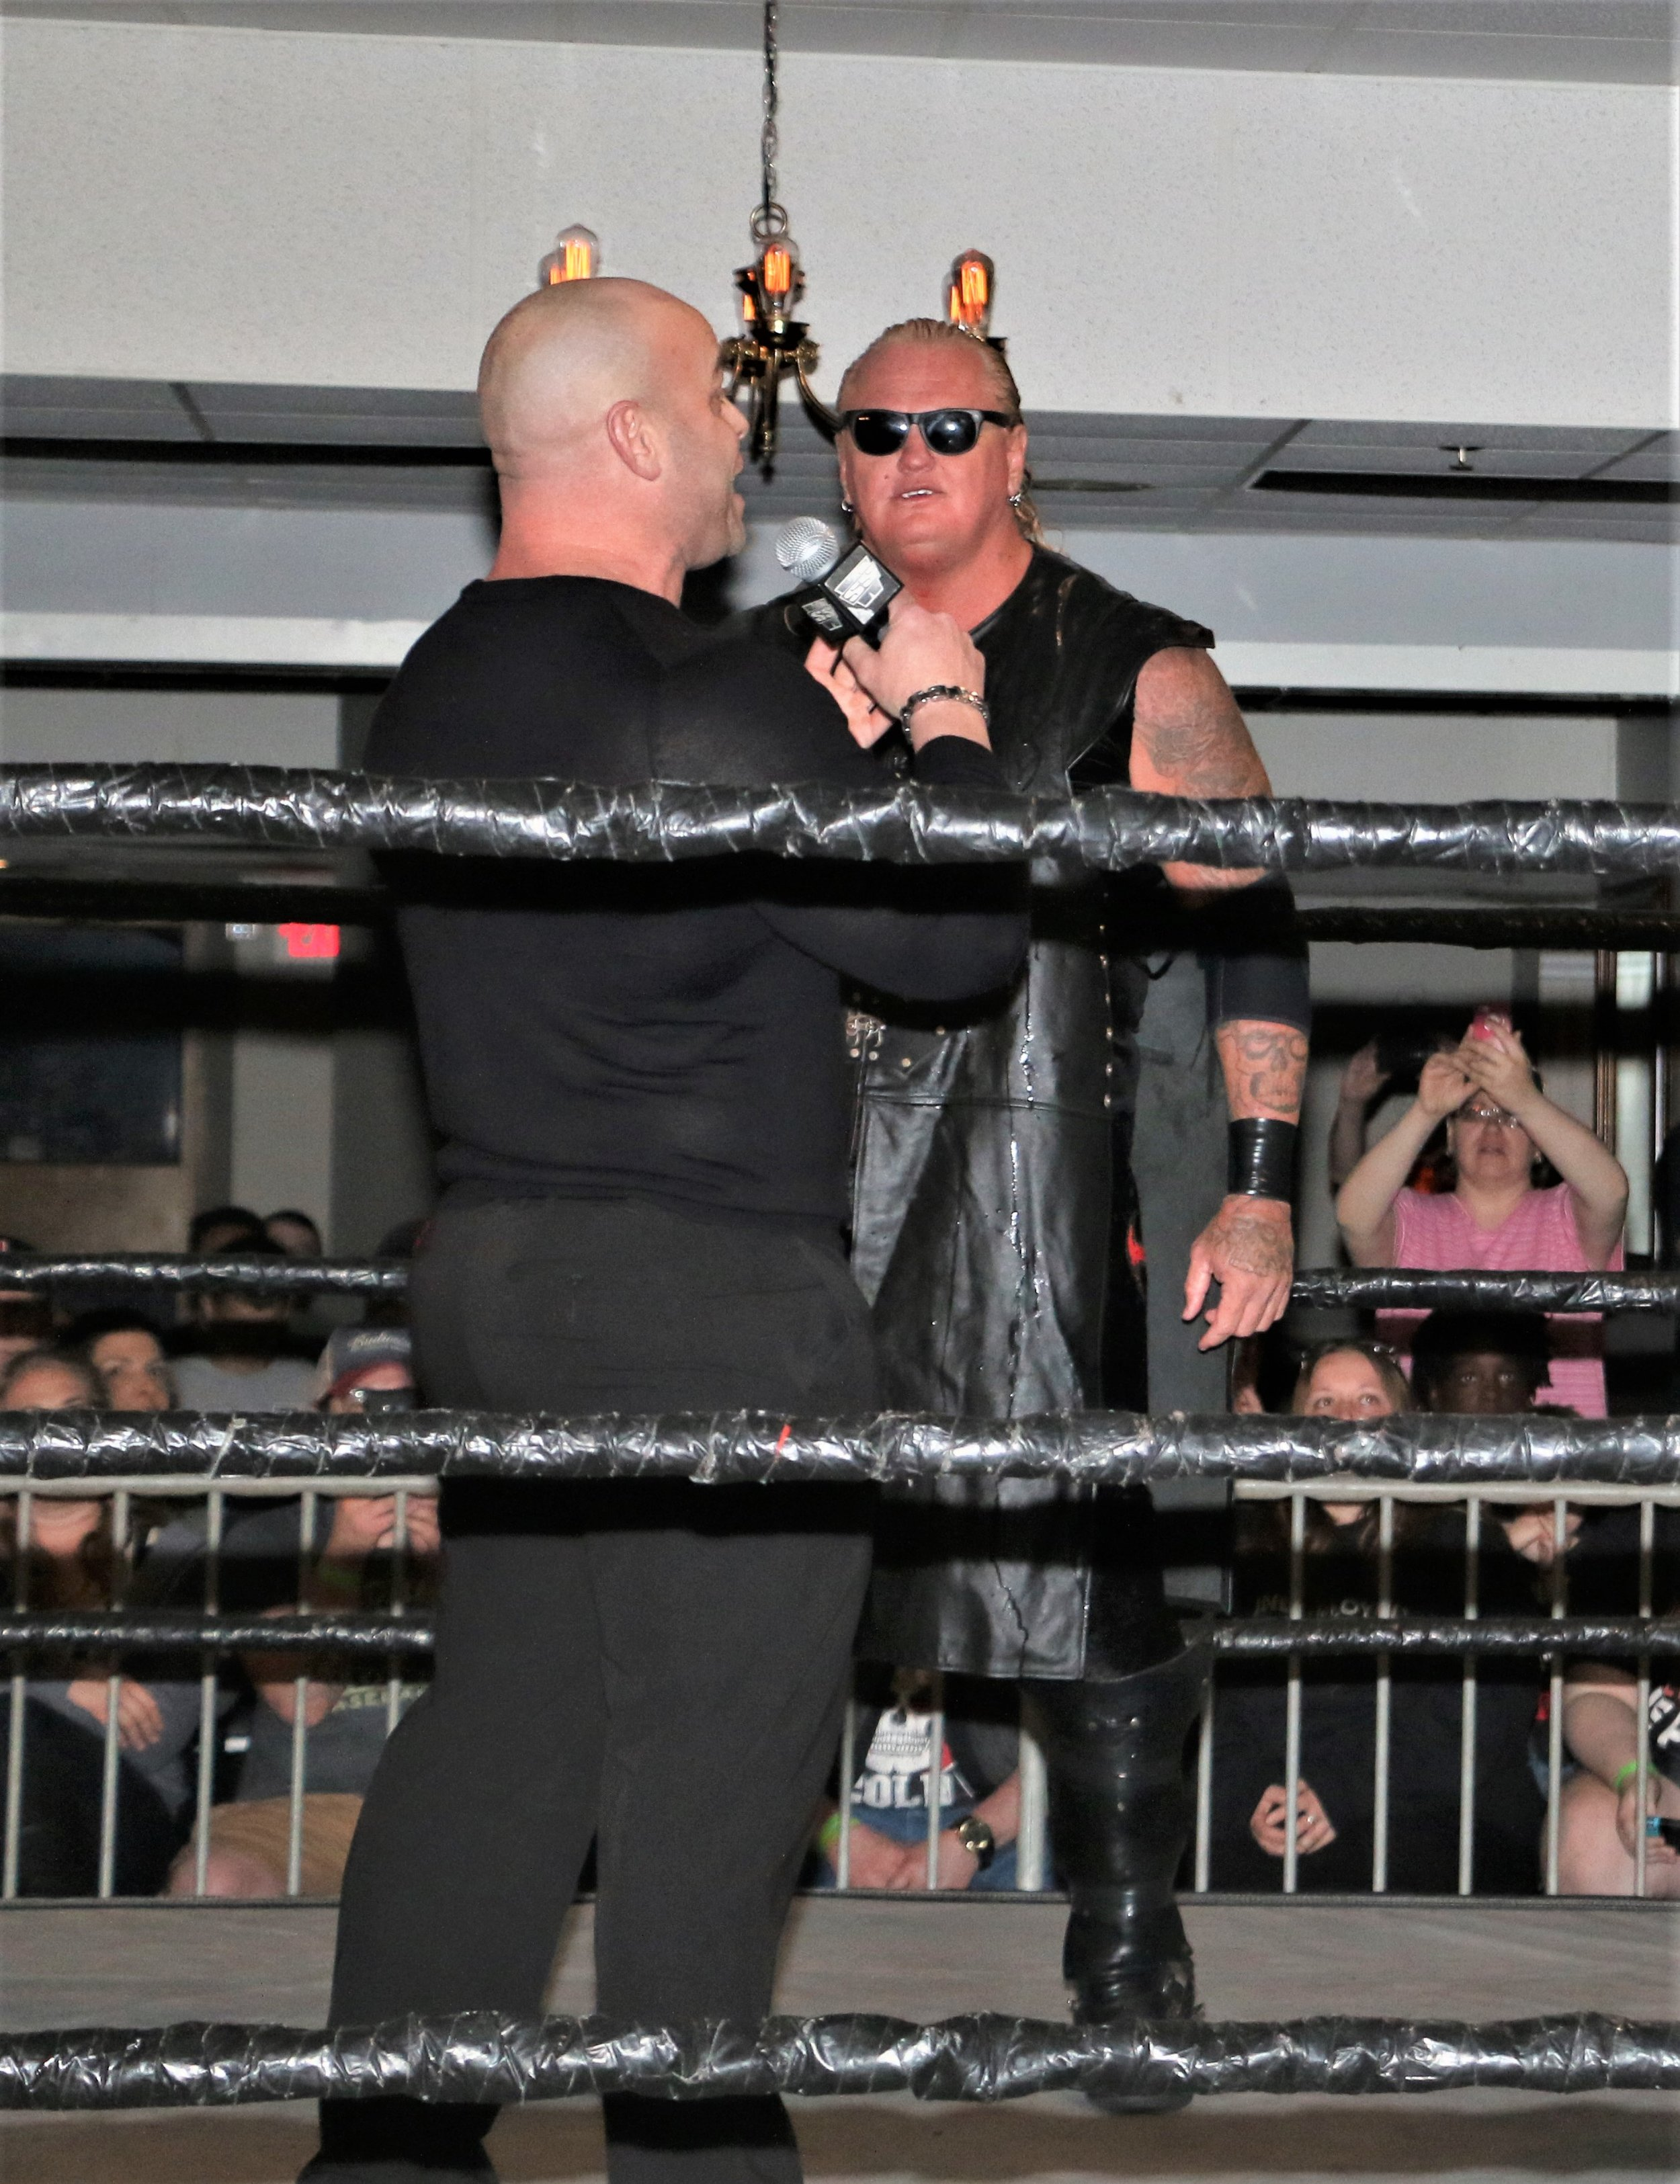 Gangrel comes face-to-face with bodybuilder David Baye.